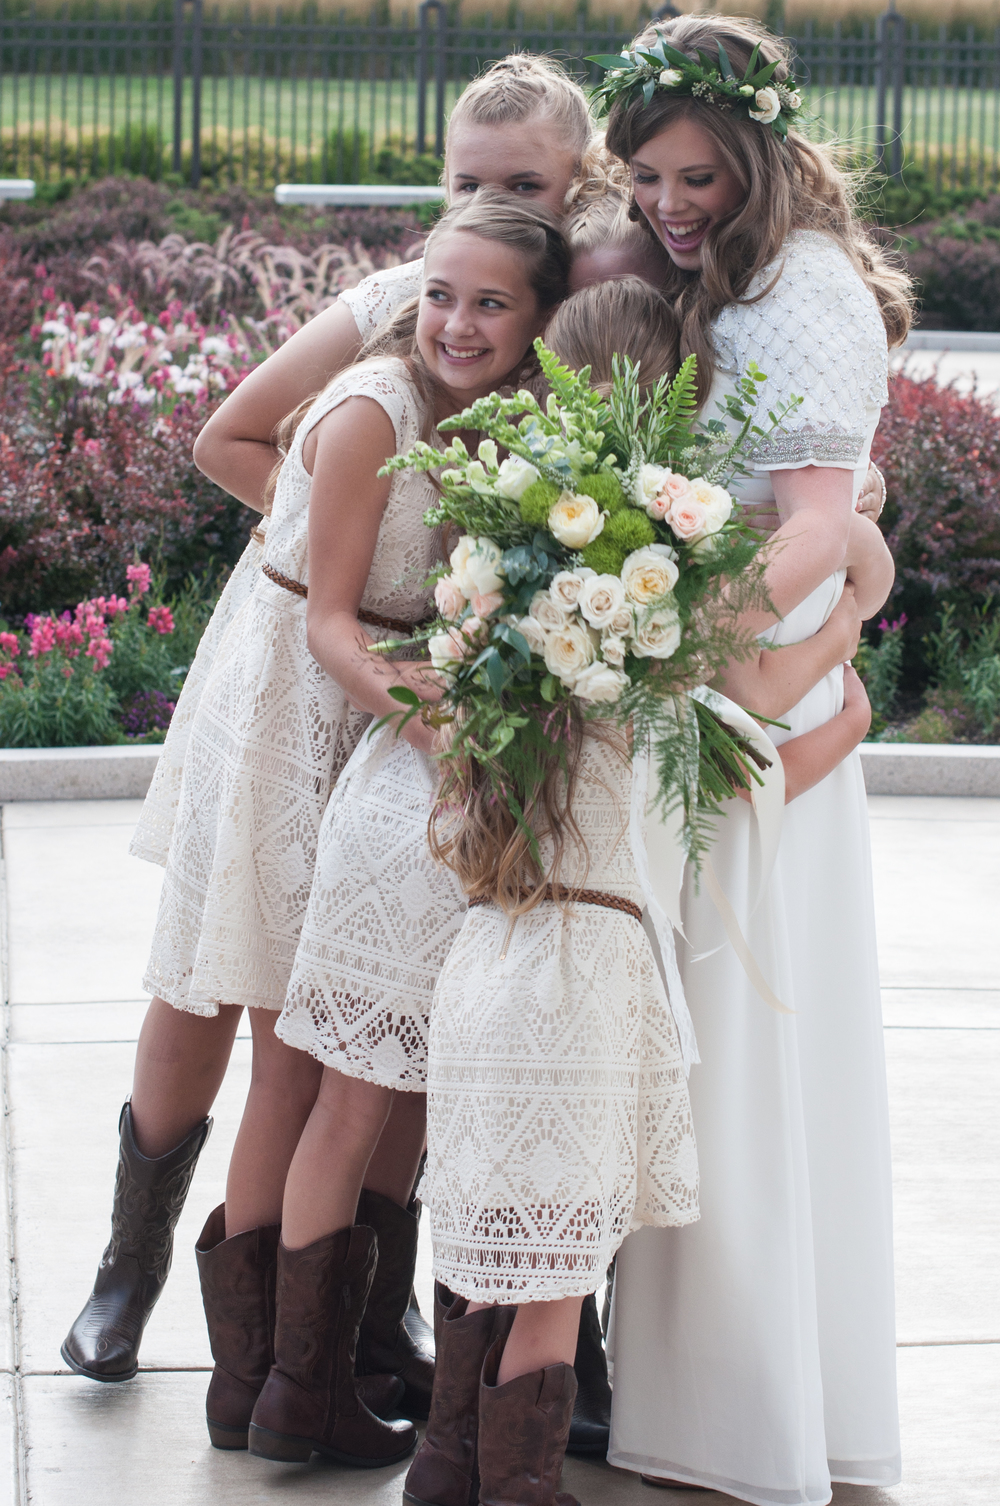 Utah Wedding - Lauren and girls2-1.jpg